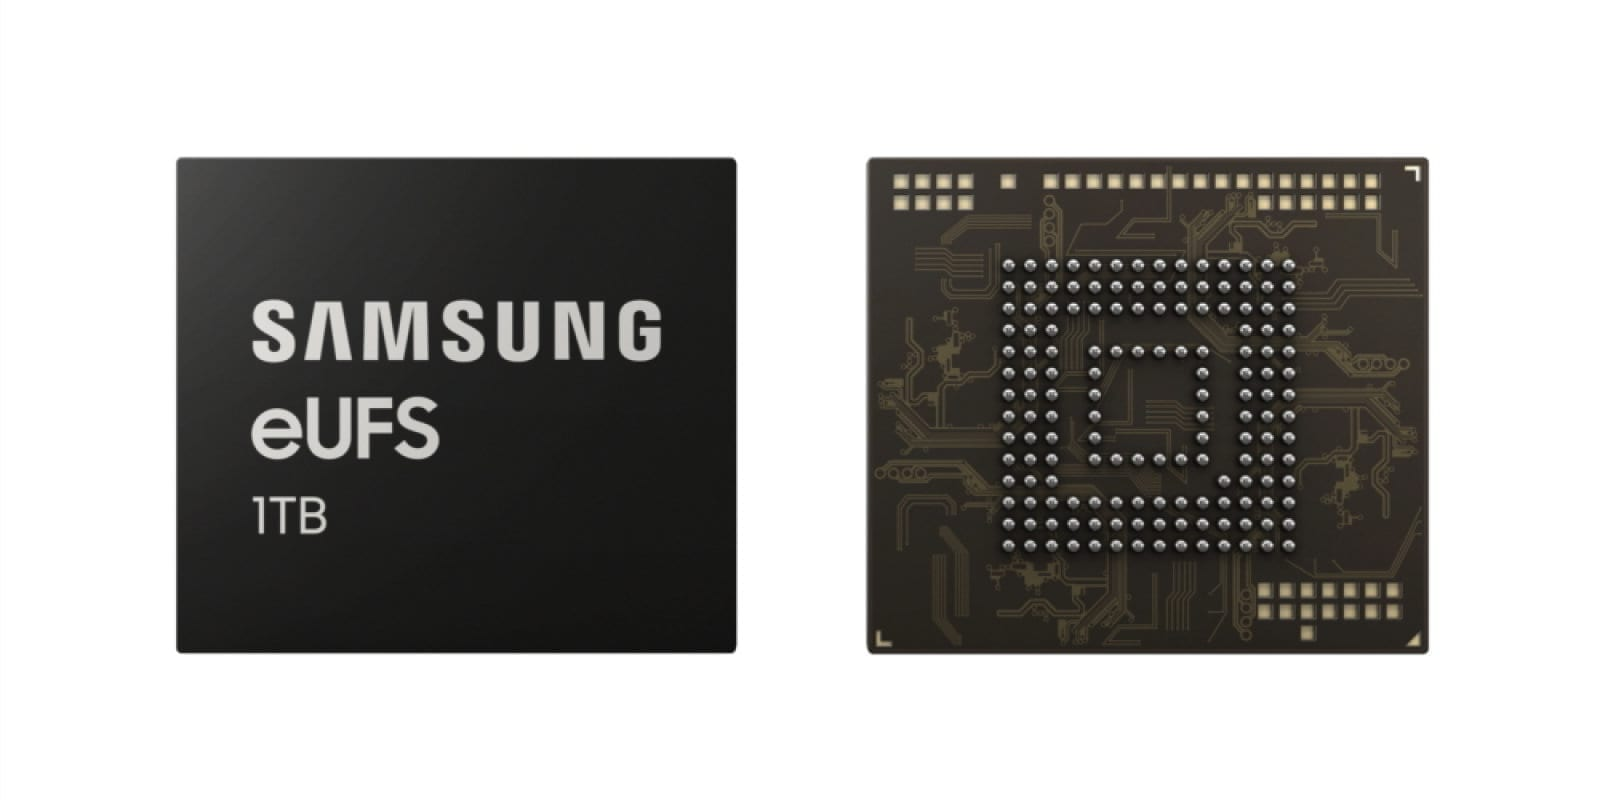 Samsung likely to debut its 1TB storage chip with upcoming flagship phones